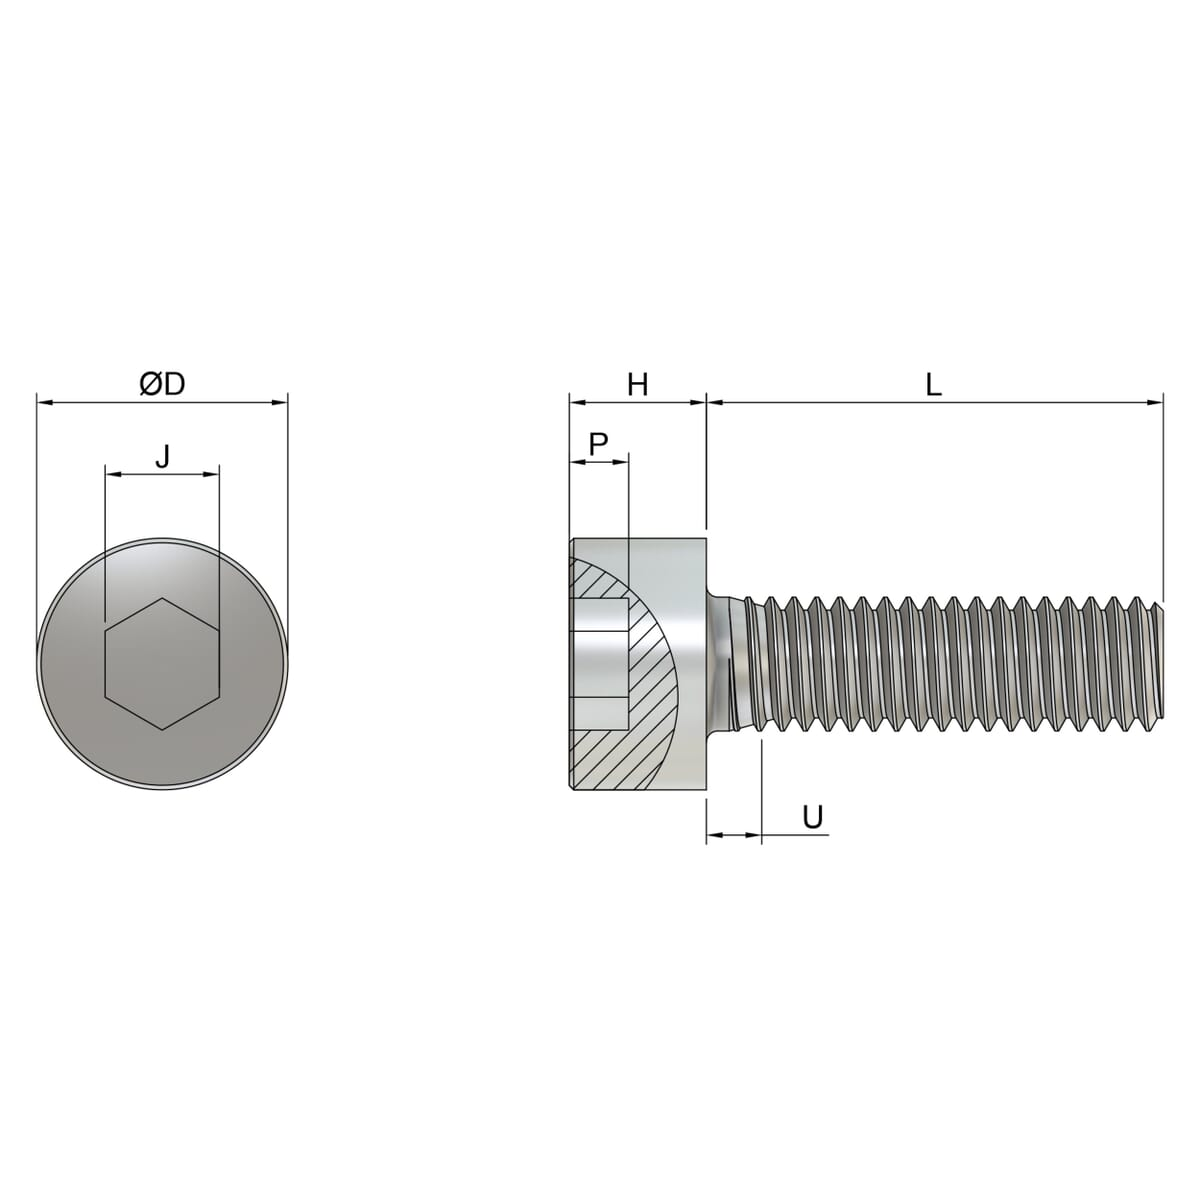 M5 x 12mm Full Thread Cap Head Screws (DIN 912) - Stainless Steel (A2) Drawing